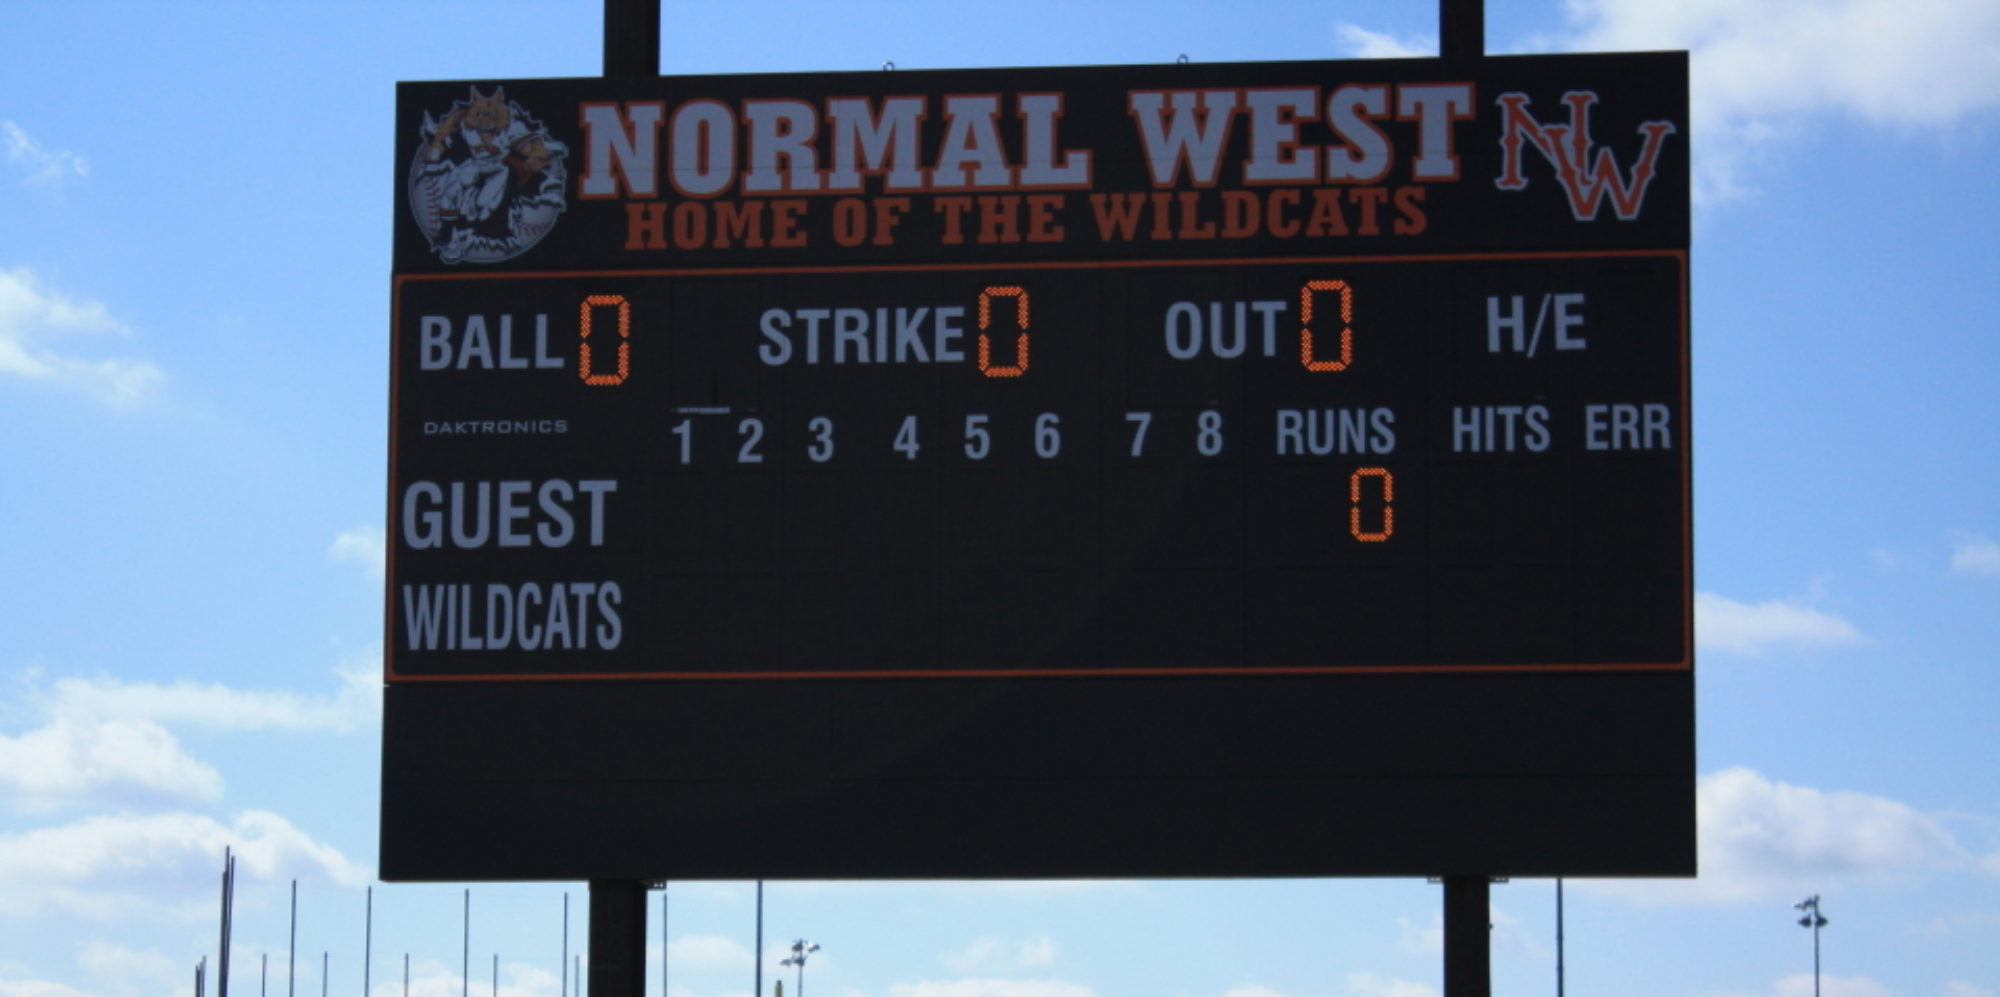 Normal West Baseball